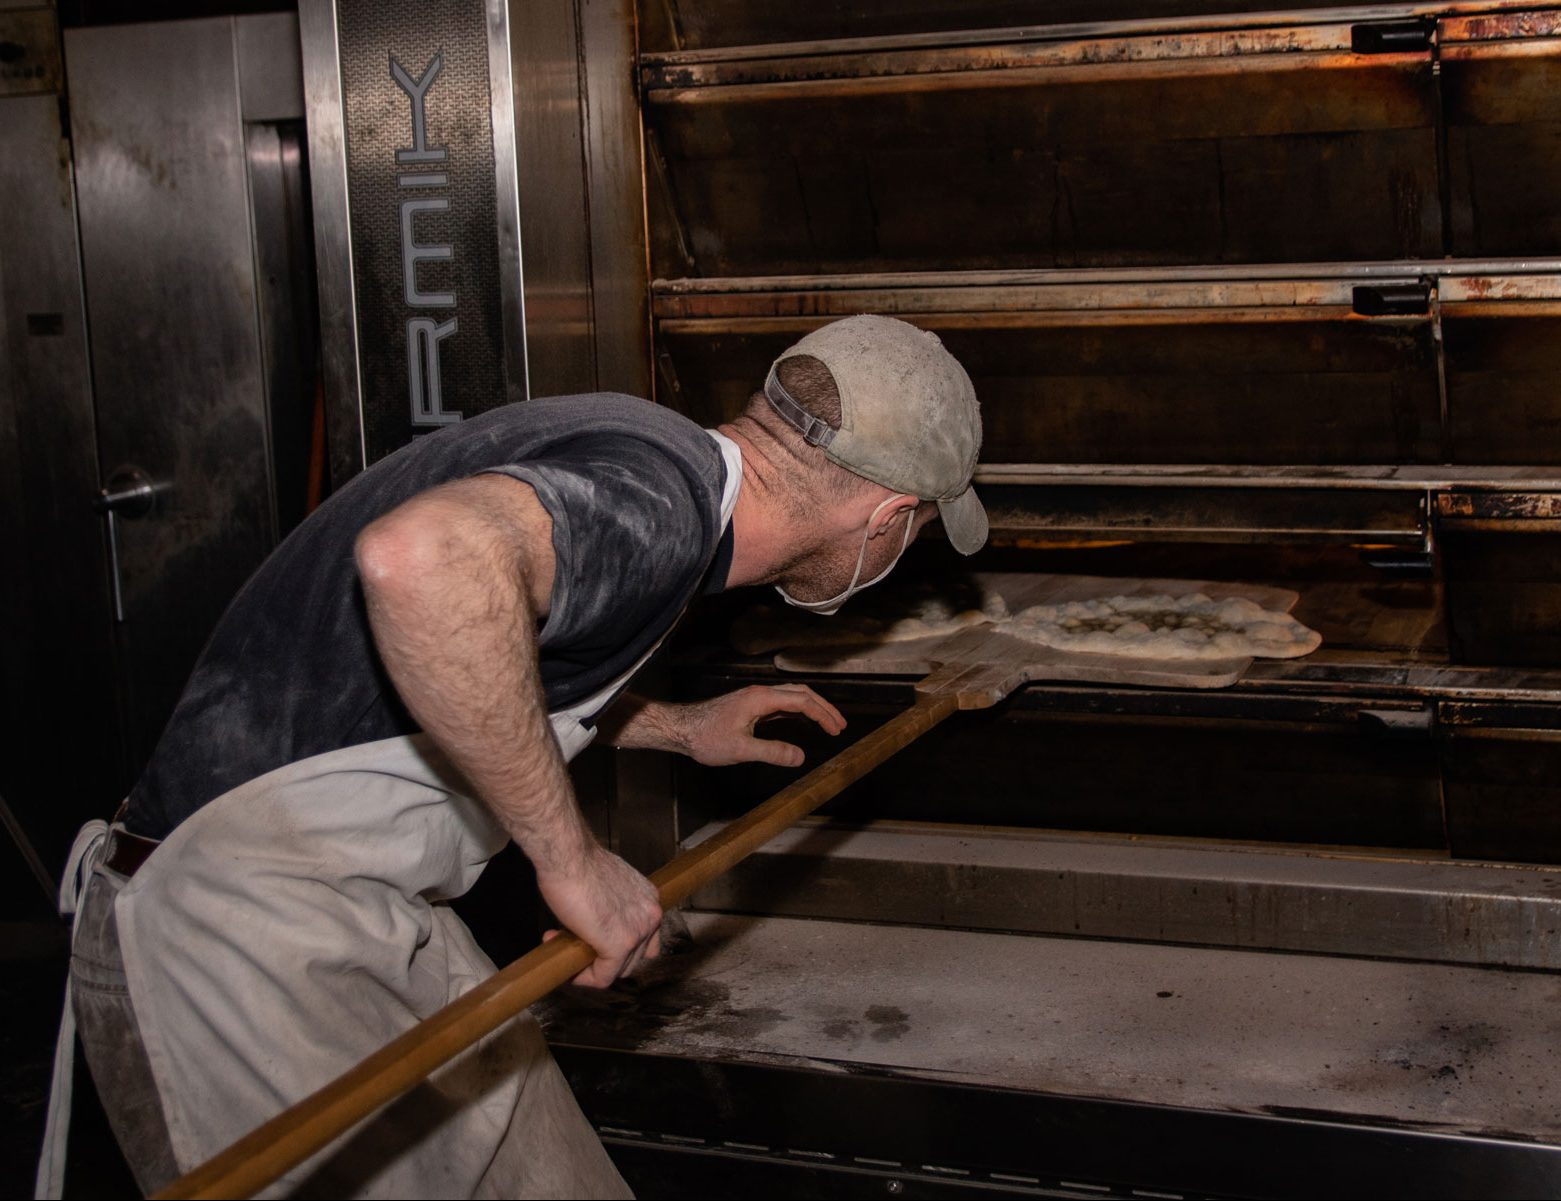 A baker placing pizzas in a large oven.